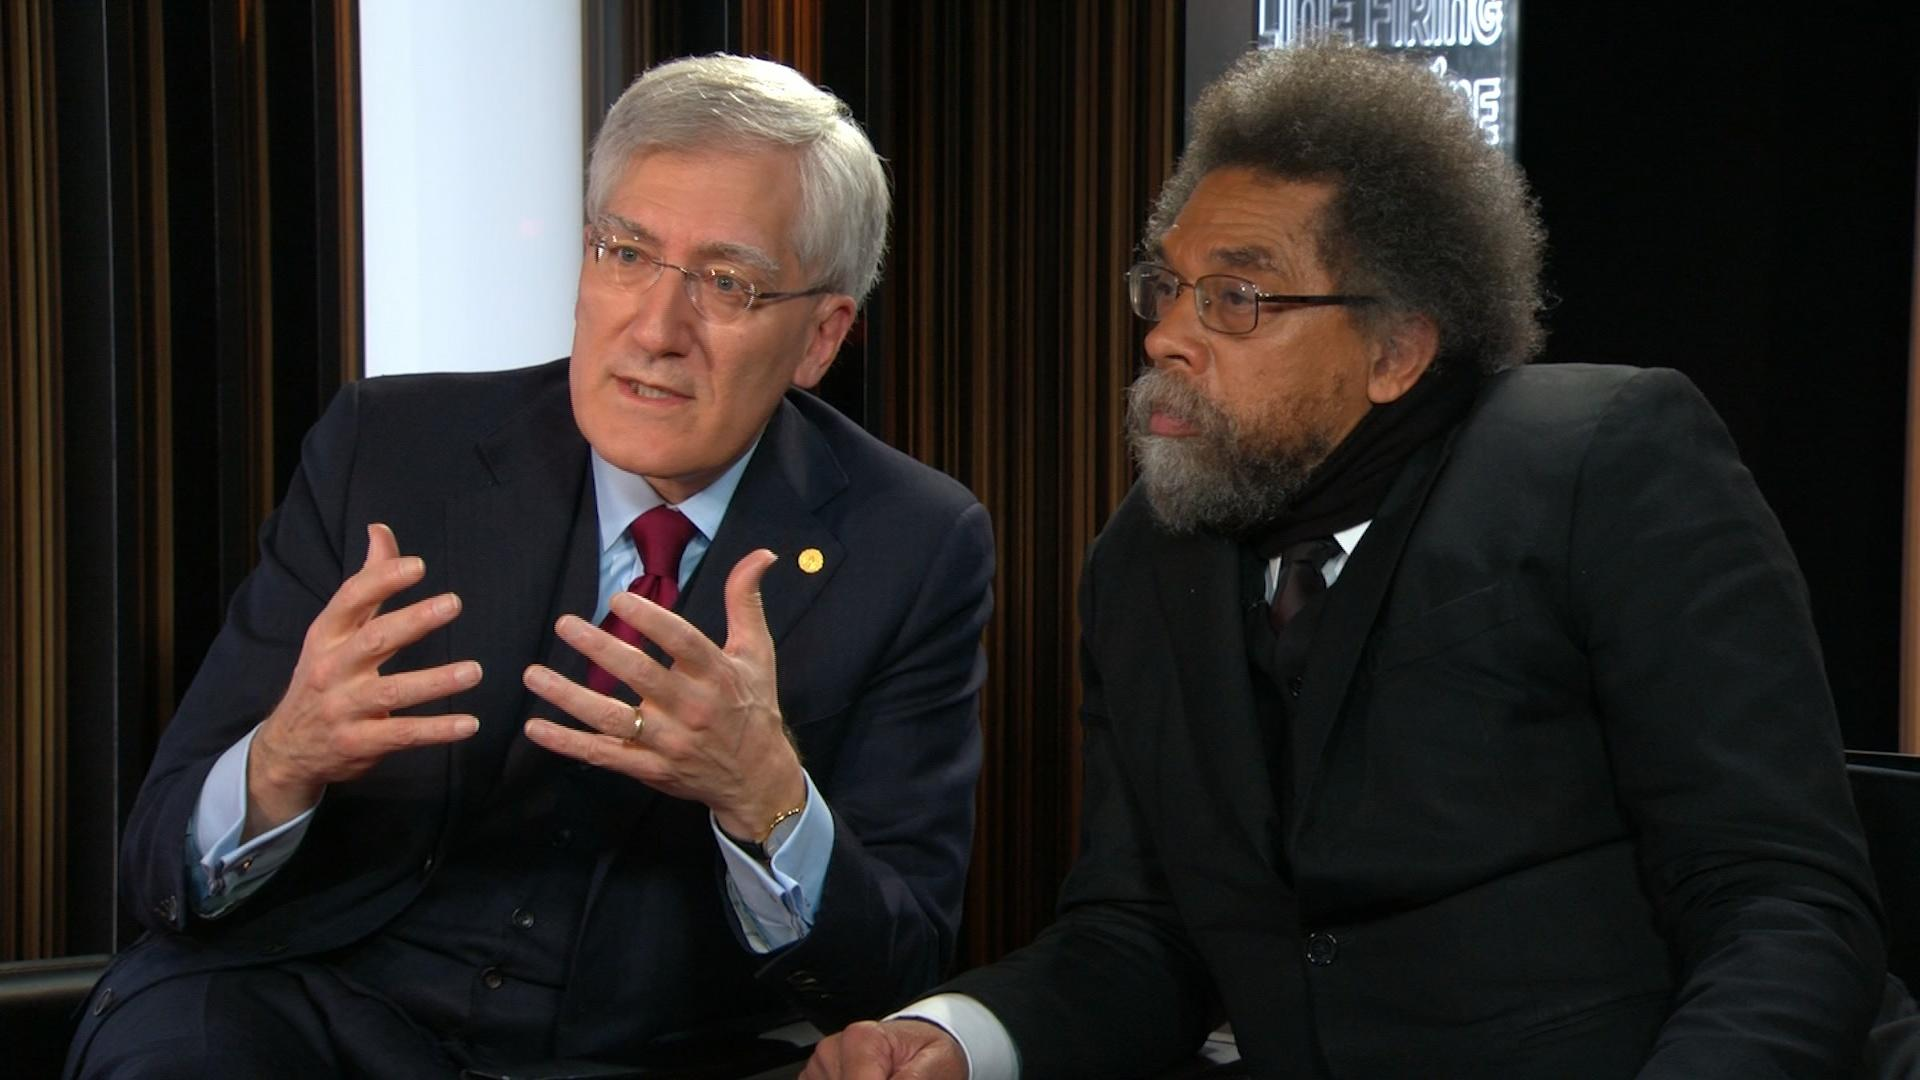 Cornel West And Robert George Video Firing Line With Margaret Hoover Pbs